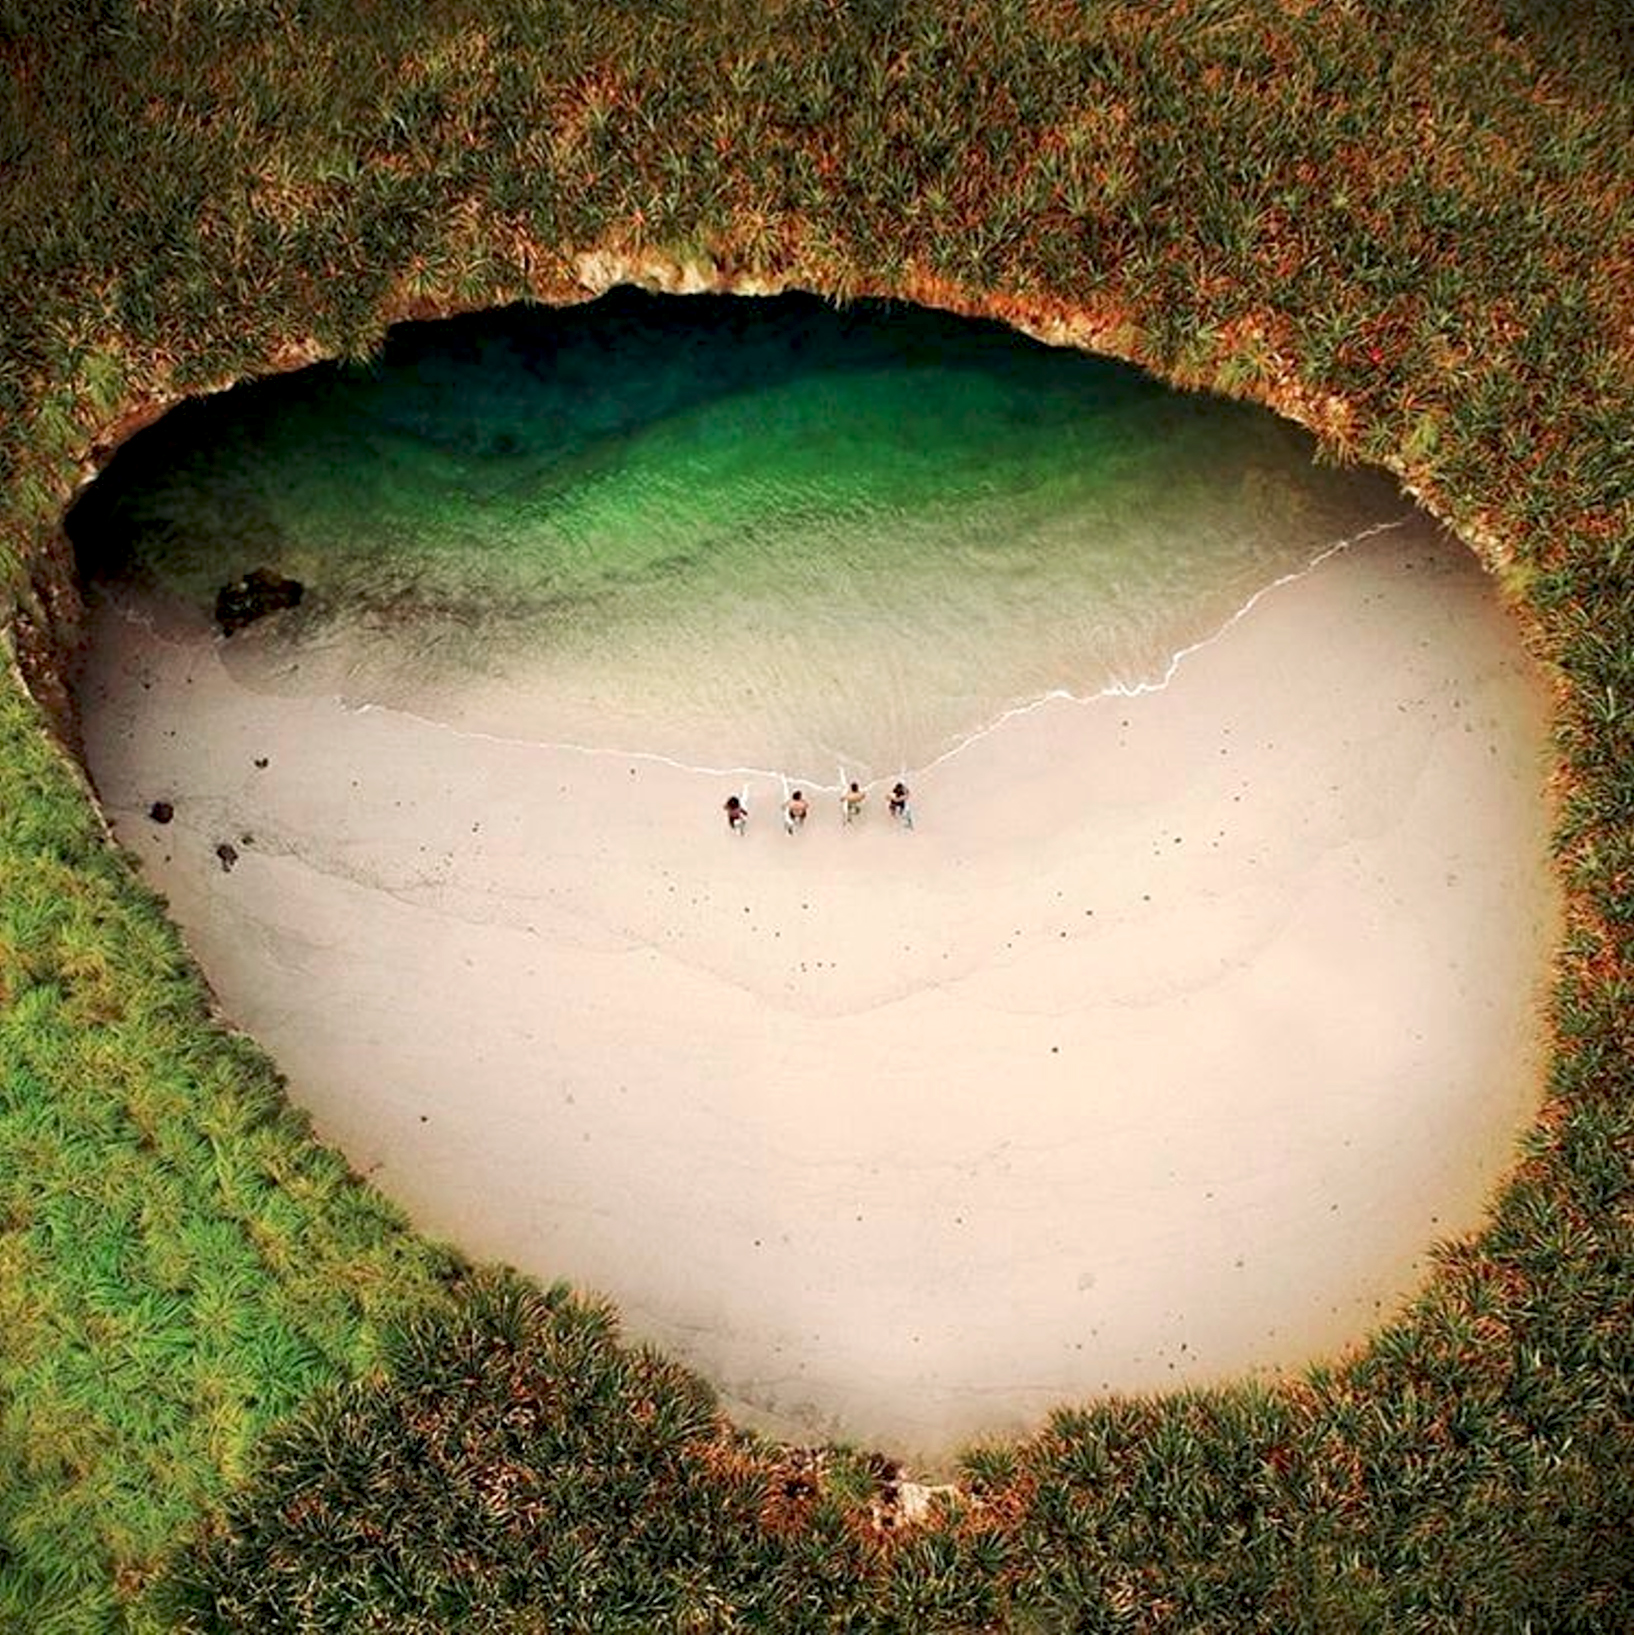 "4/20/2017  ""Hidden Beach""   Islas Marietas, Mexico  20.703953, -105.566868  Check out this stunning drone photo of the ""Hidden Beach"" in Islas Marietas, Mexico. The islands where the beach is located were created thousands of years ago by volcanic activity and are still uninhabited. It takes about one hour by boat to reach the island, which is visited by hundreds of tourist everyday.  Found on @fromwhereidrone  Drone photo by: Lugo Lugo"